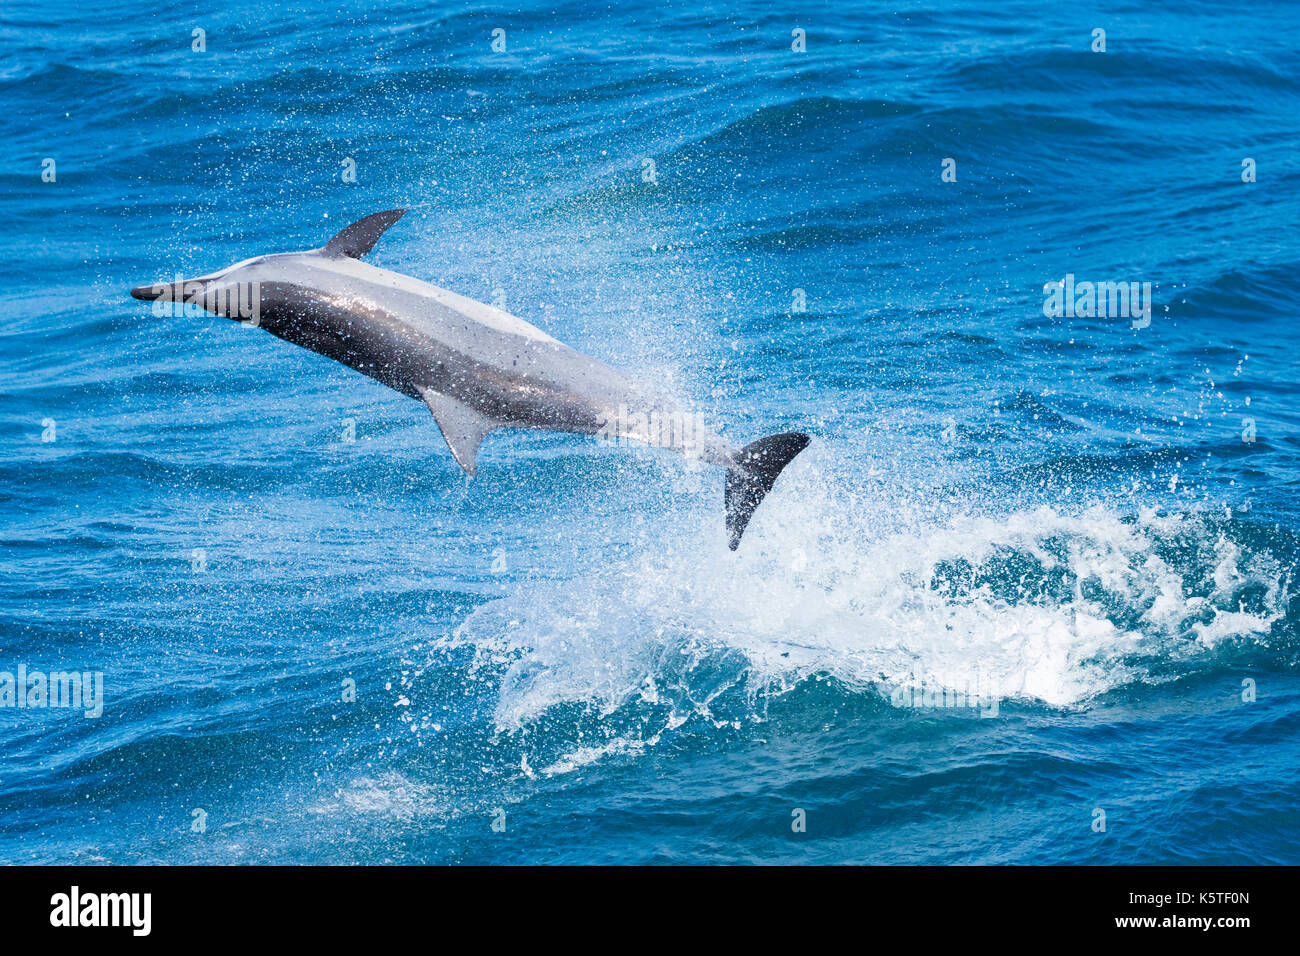 Gray's Spinner Dolphin or Hawaiian Spinner Dolphin (Stenella longirostris) jumping and spinning in the Pacific Ocean off the east coast of Taiwan - Stock Image